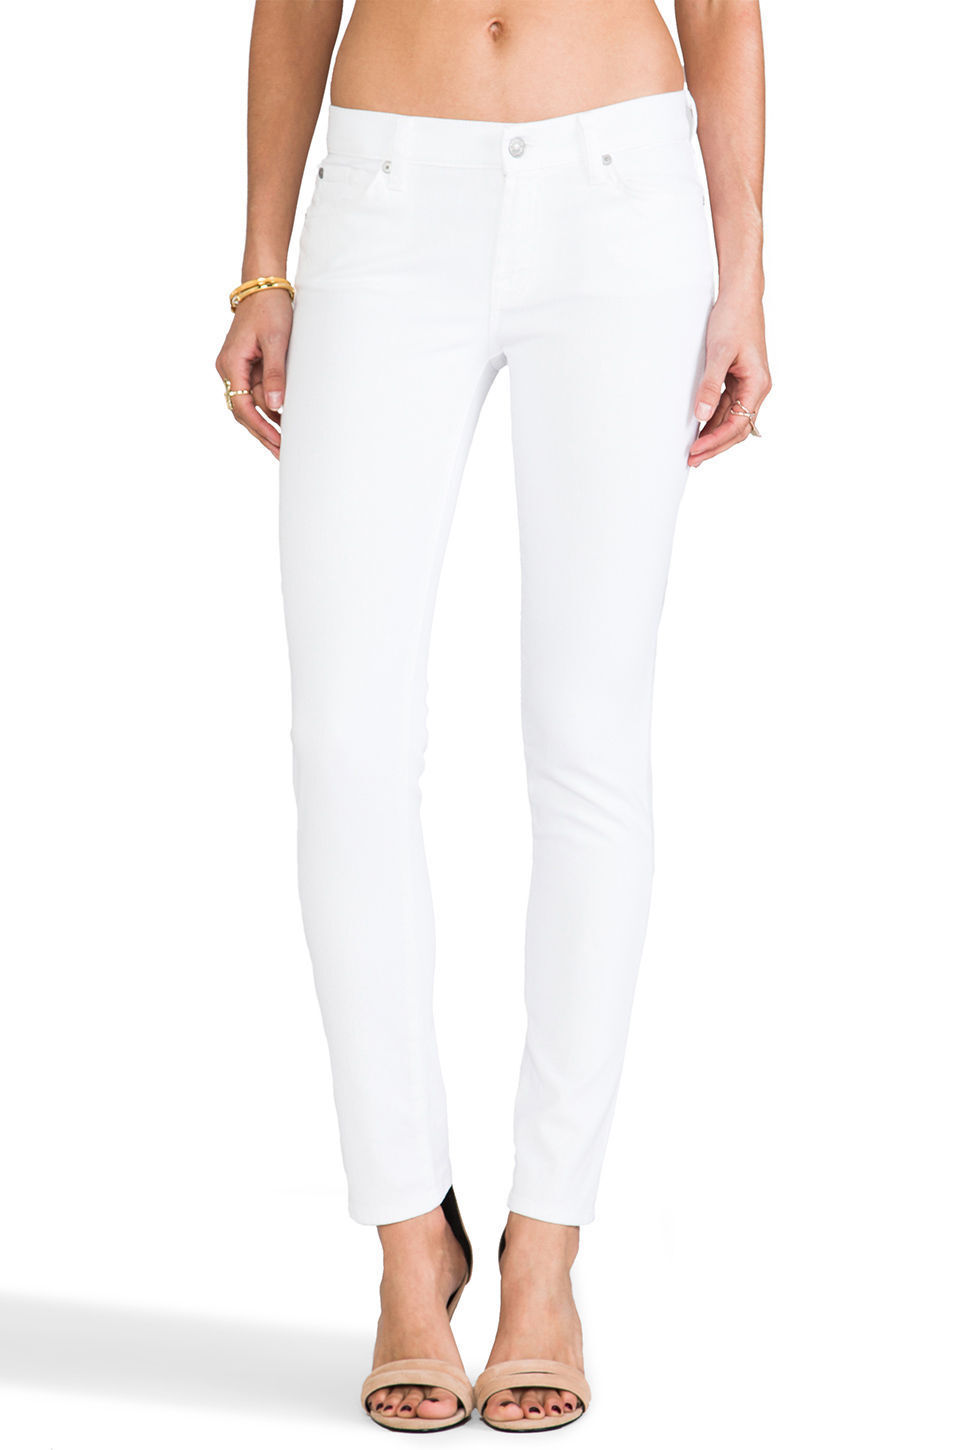 NWT 7 For All Mankind The Slim Cigarette Jeans, Wash - Clean White SIZE 29